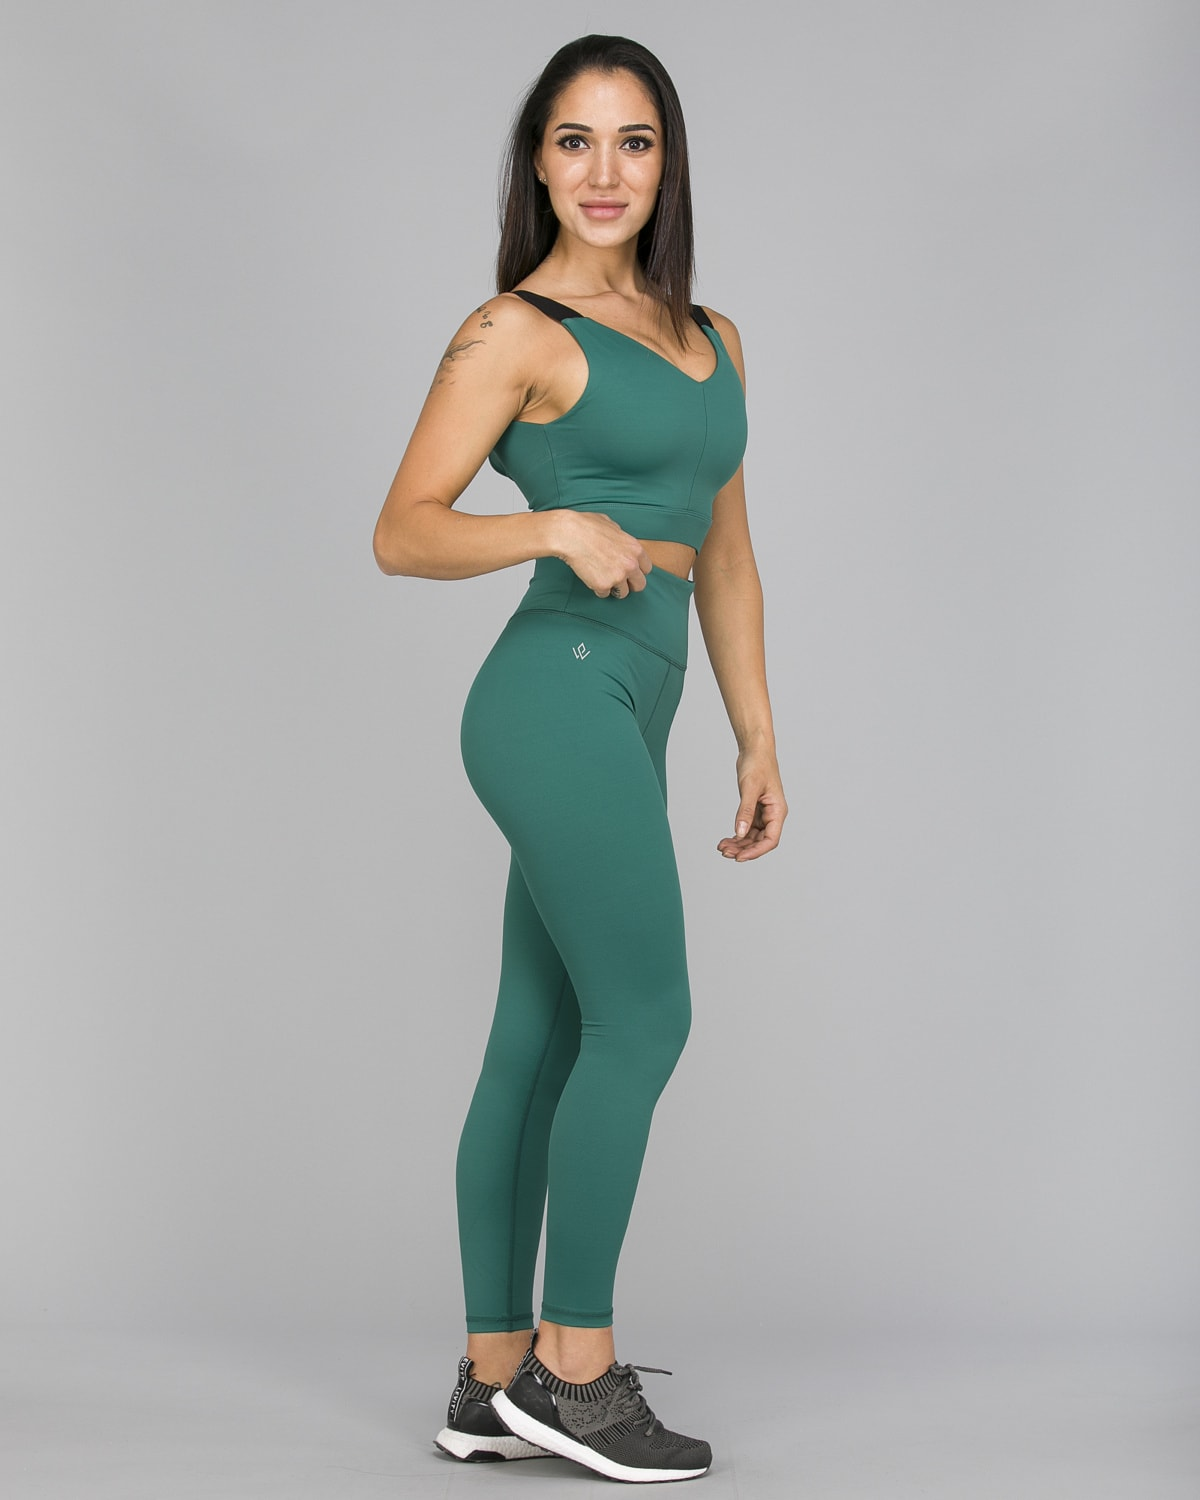 Workout Empire – With Confidence Shape Leggings – Emerald Green4